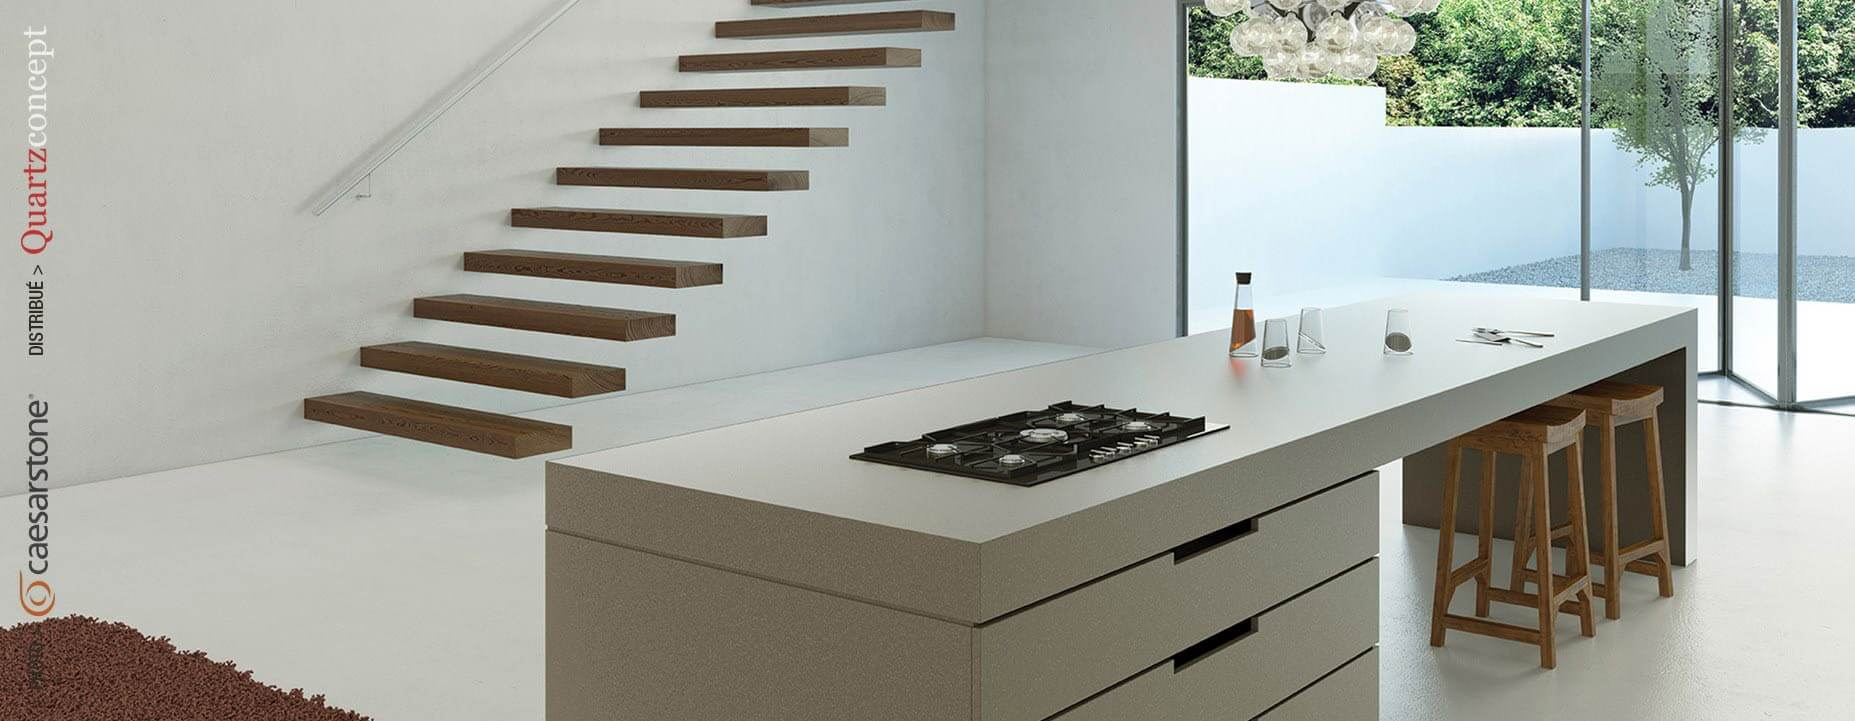 Quartz Caesarstone couleur 4003 sleek concrete